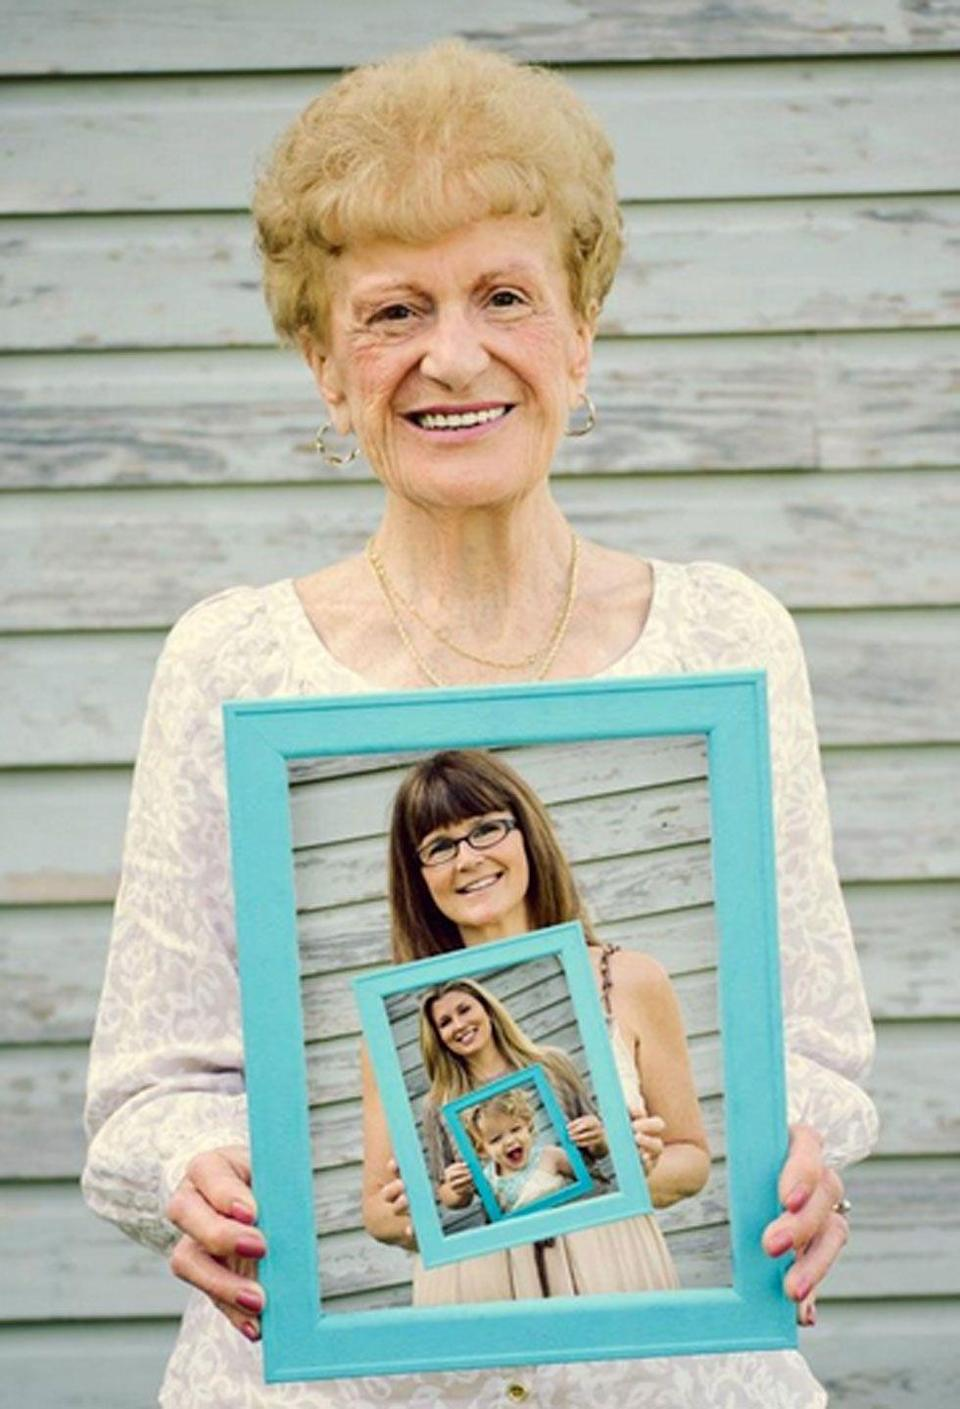 """<p>Gift your mom with this """"photo in a photo"""" of all the generations of her family. You can even keep the tradition going year after year (or when more generations are born!).</p><p><strong>See more at <a href=""""http://www.moosephotography.net/family.html"""" rel=""""nofollow noopener"""" target=""""_blank"""" data-ylk=""""slk:Moose Photography"""" class=""""link rapid-noclick-resp"""">Moose Photography</a>.</strong></p>"""